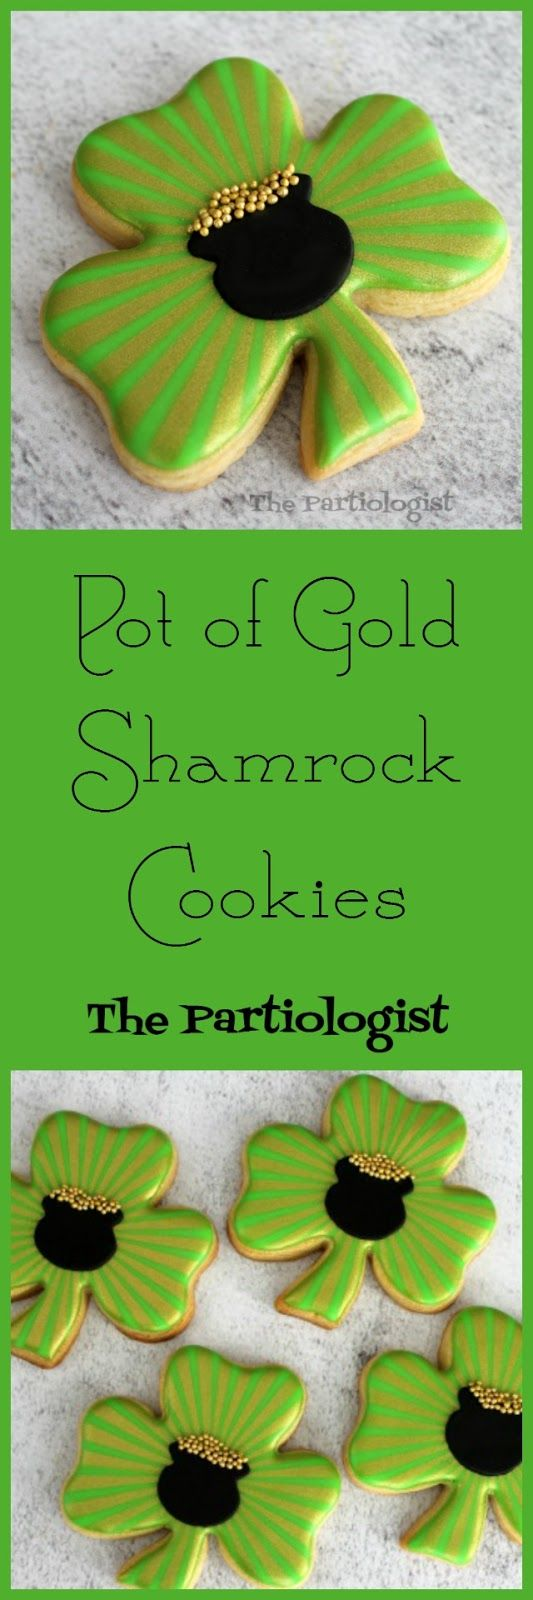 Shamrock Cookies with Pot of Gold